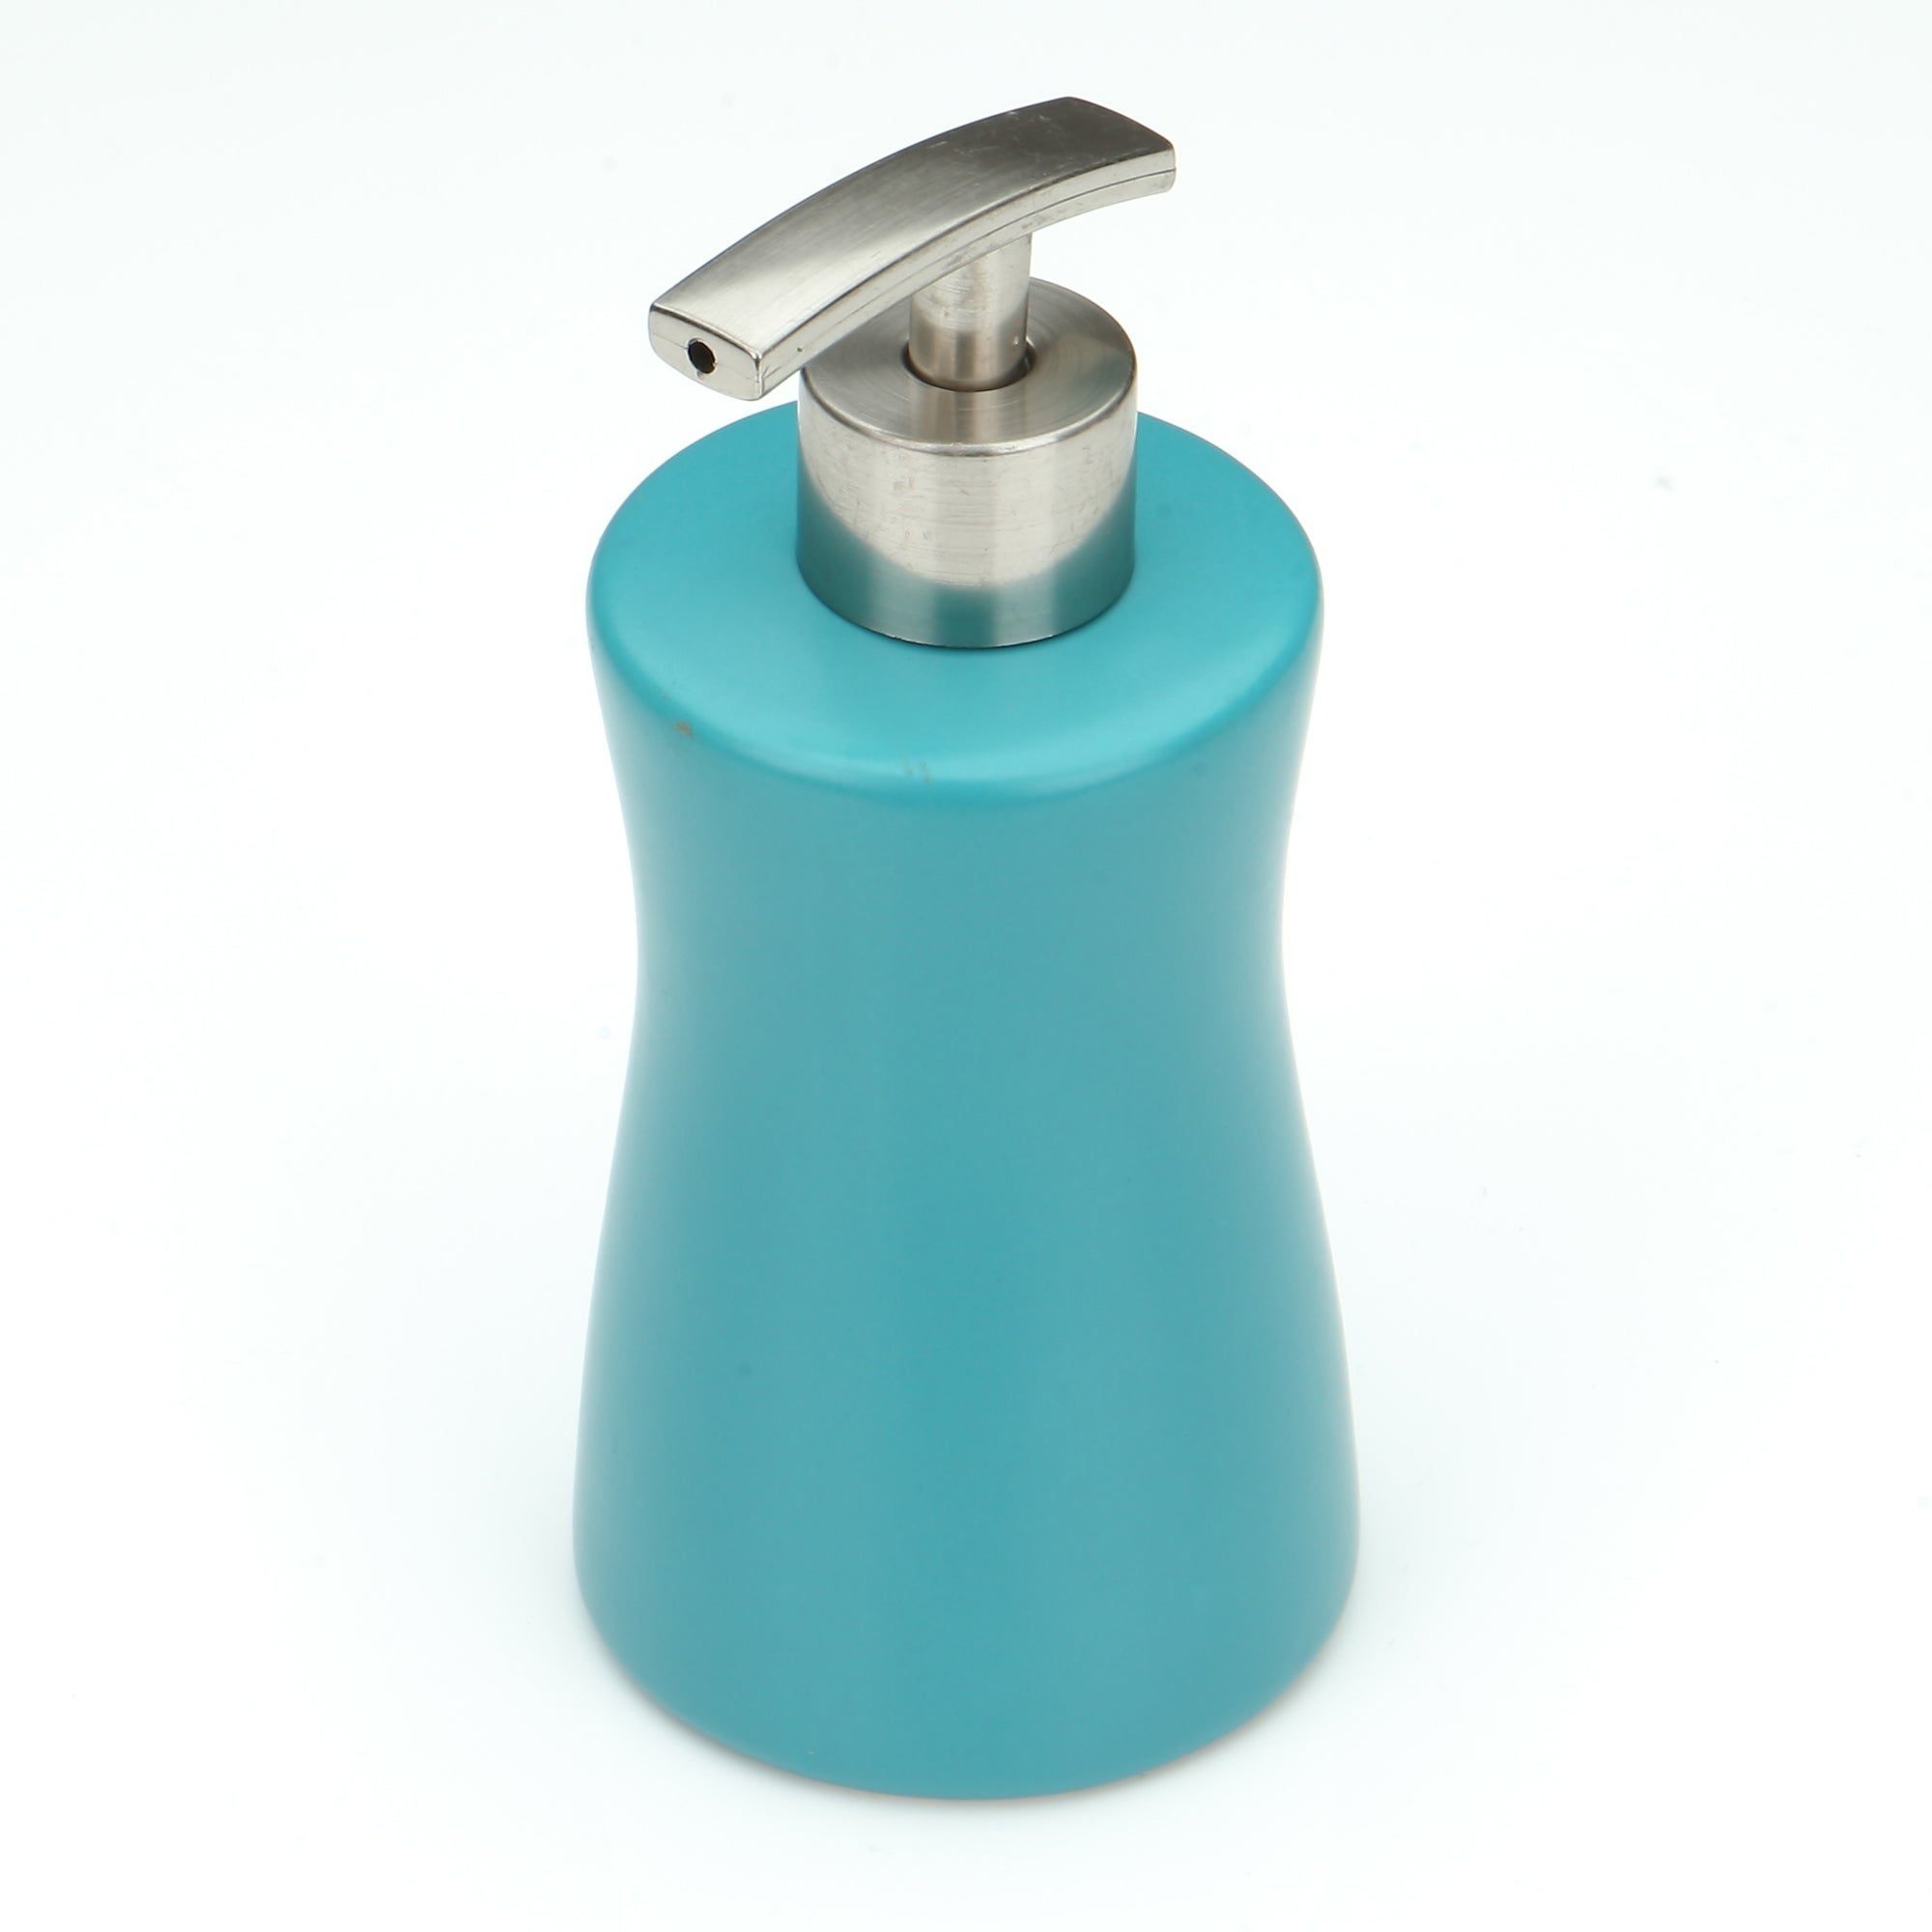 Egyptian Coordinates Collection Soap Dispenser